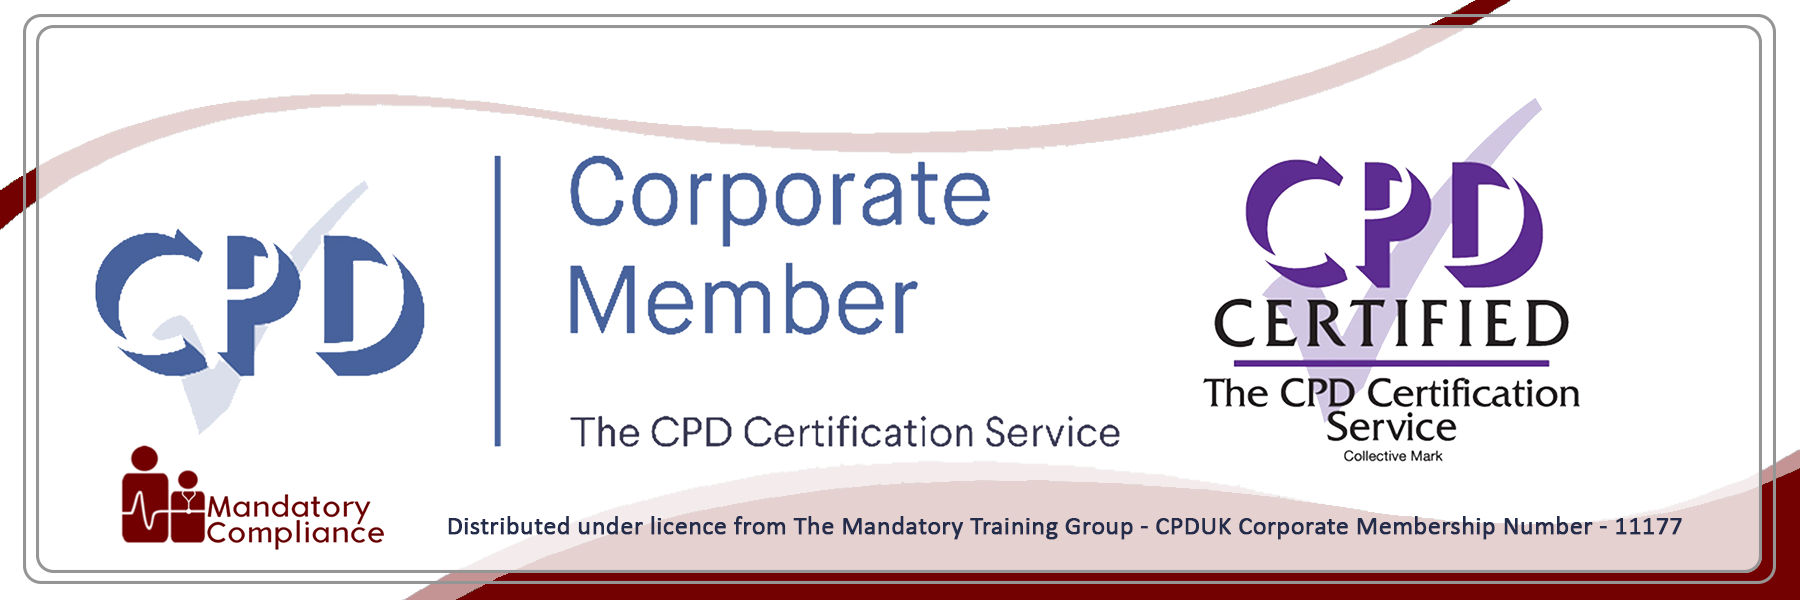 Chaperone Training for Health and Care - Online Training Course - CPD Accredited - Mandatory Compliance UK -